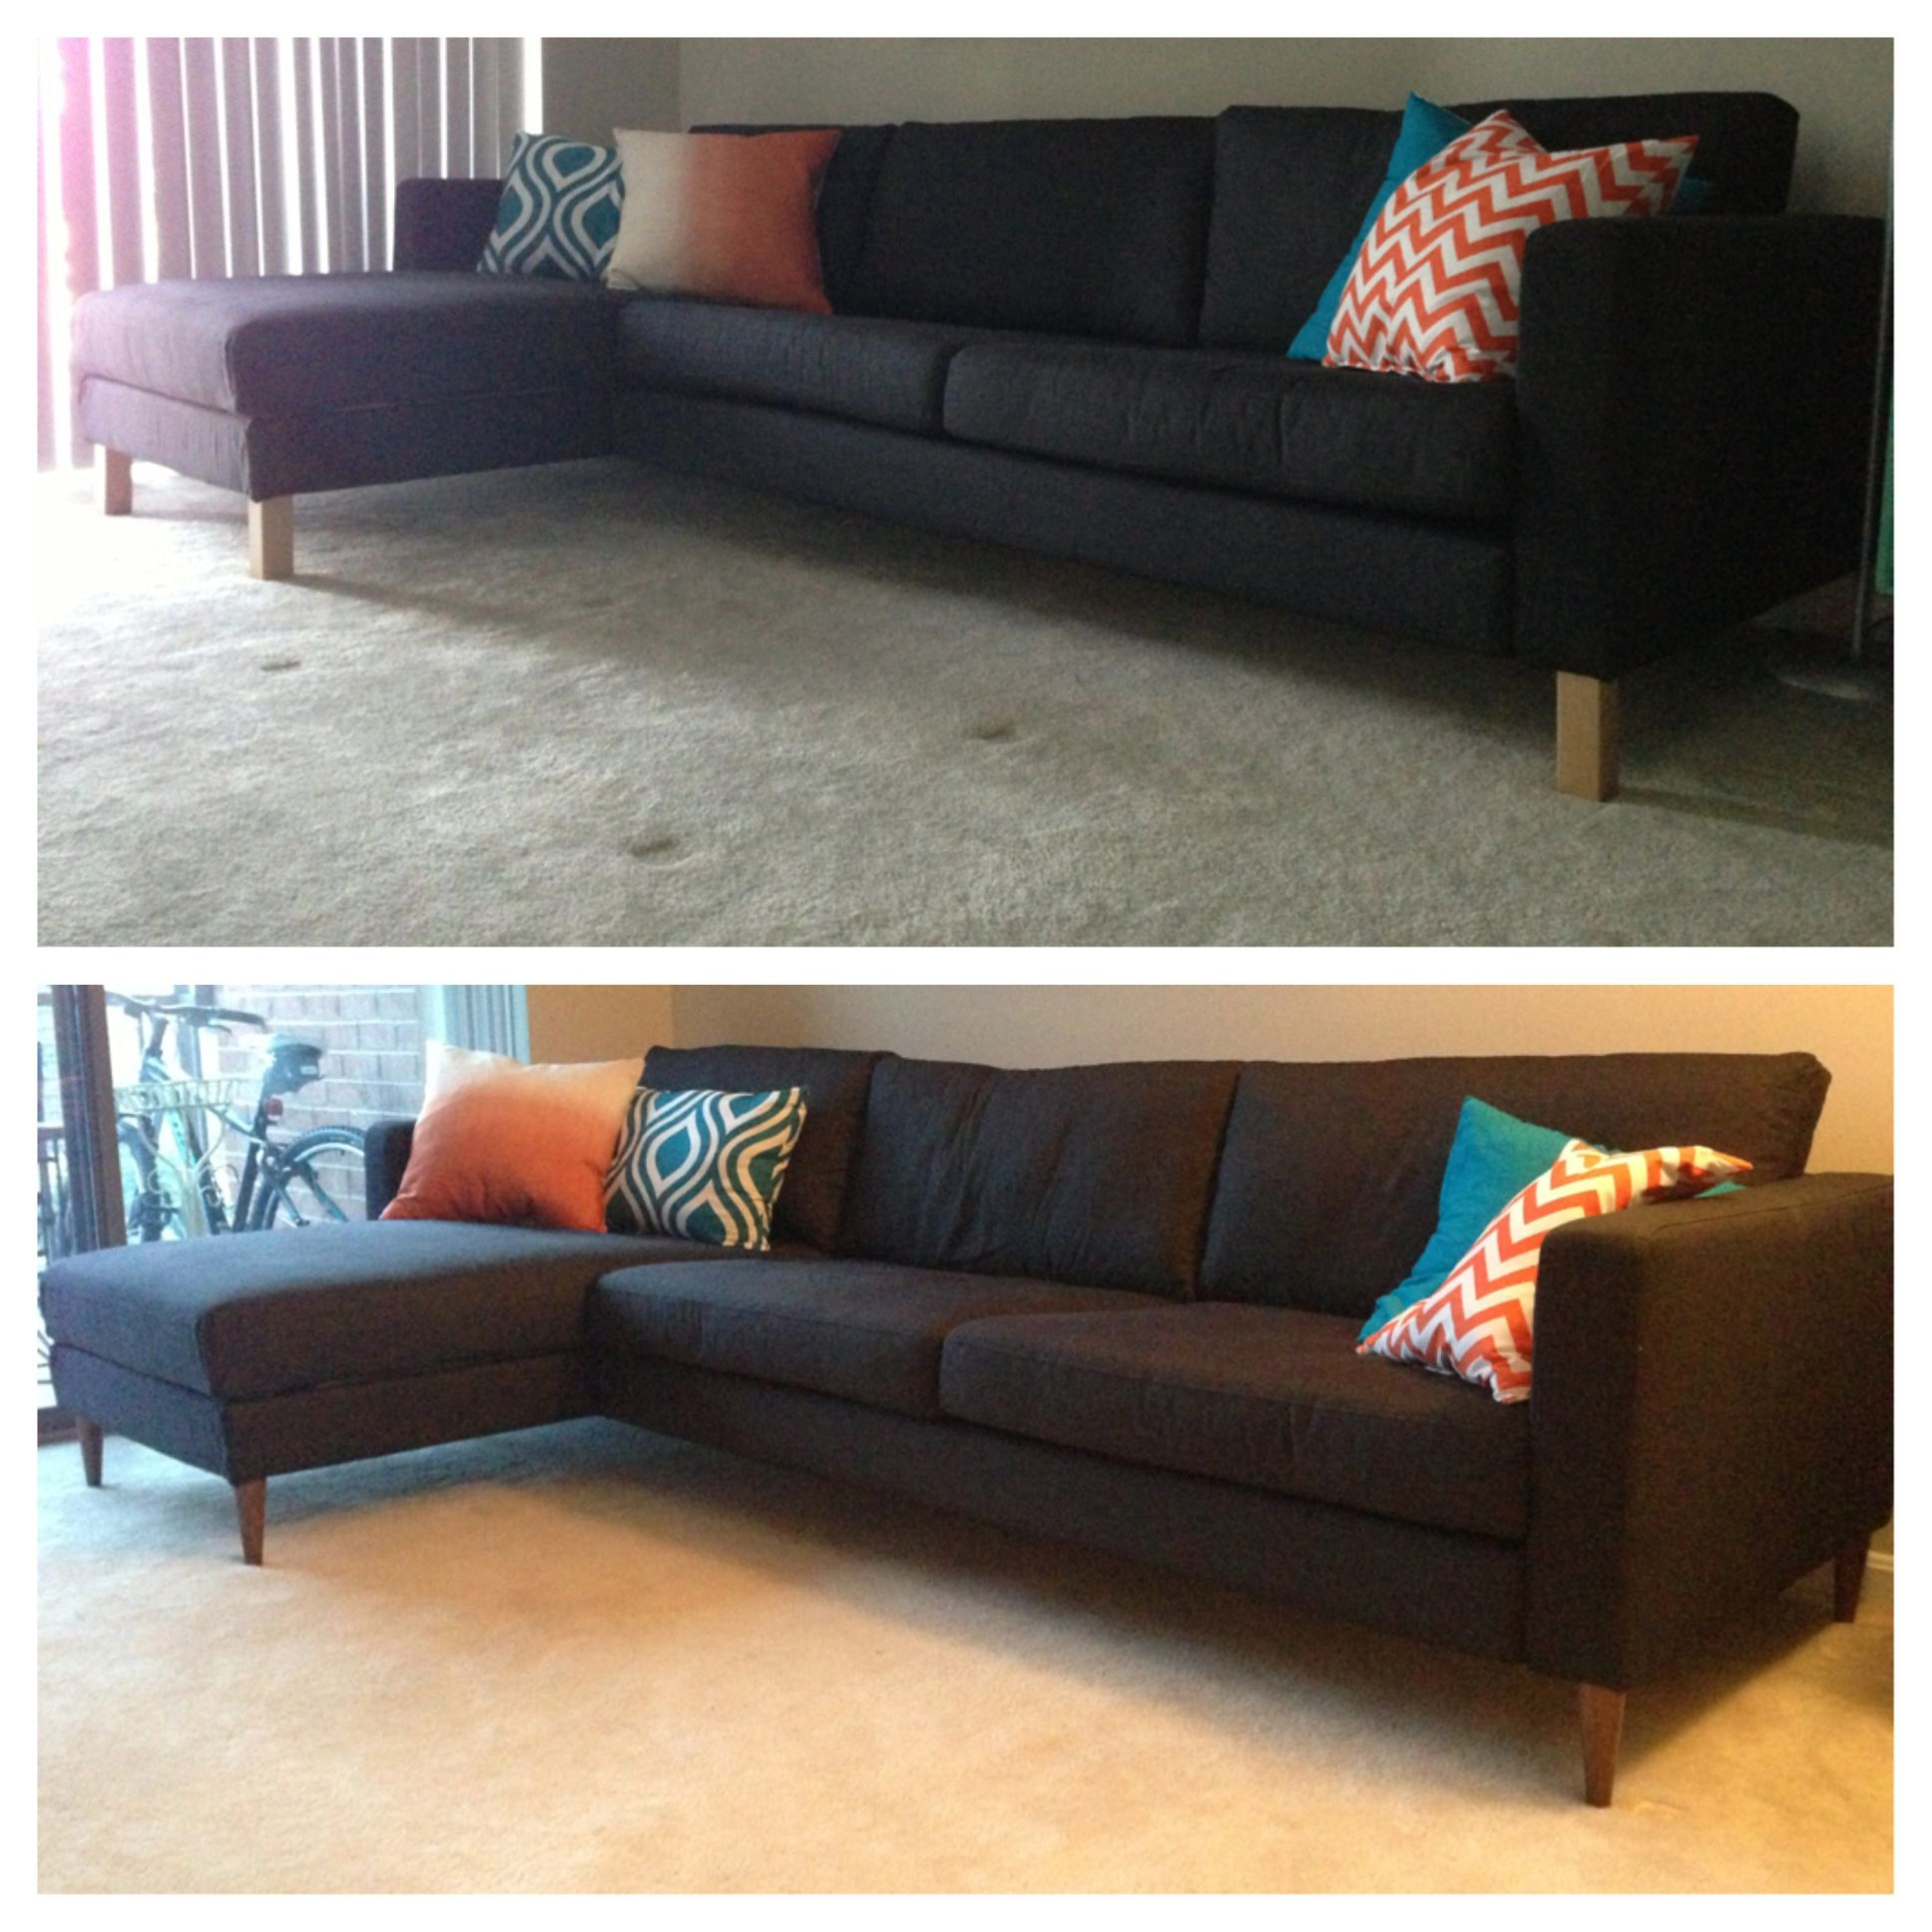 Ikea Karlstad Legs: Hack Your Ikea Karlstad Sofa And Chaise With Mid Century